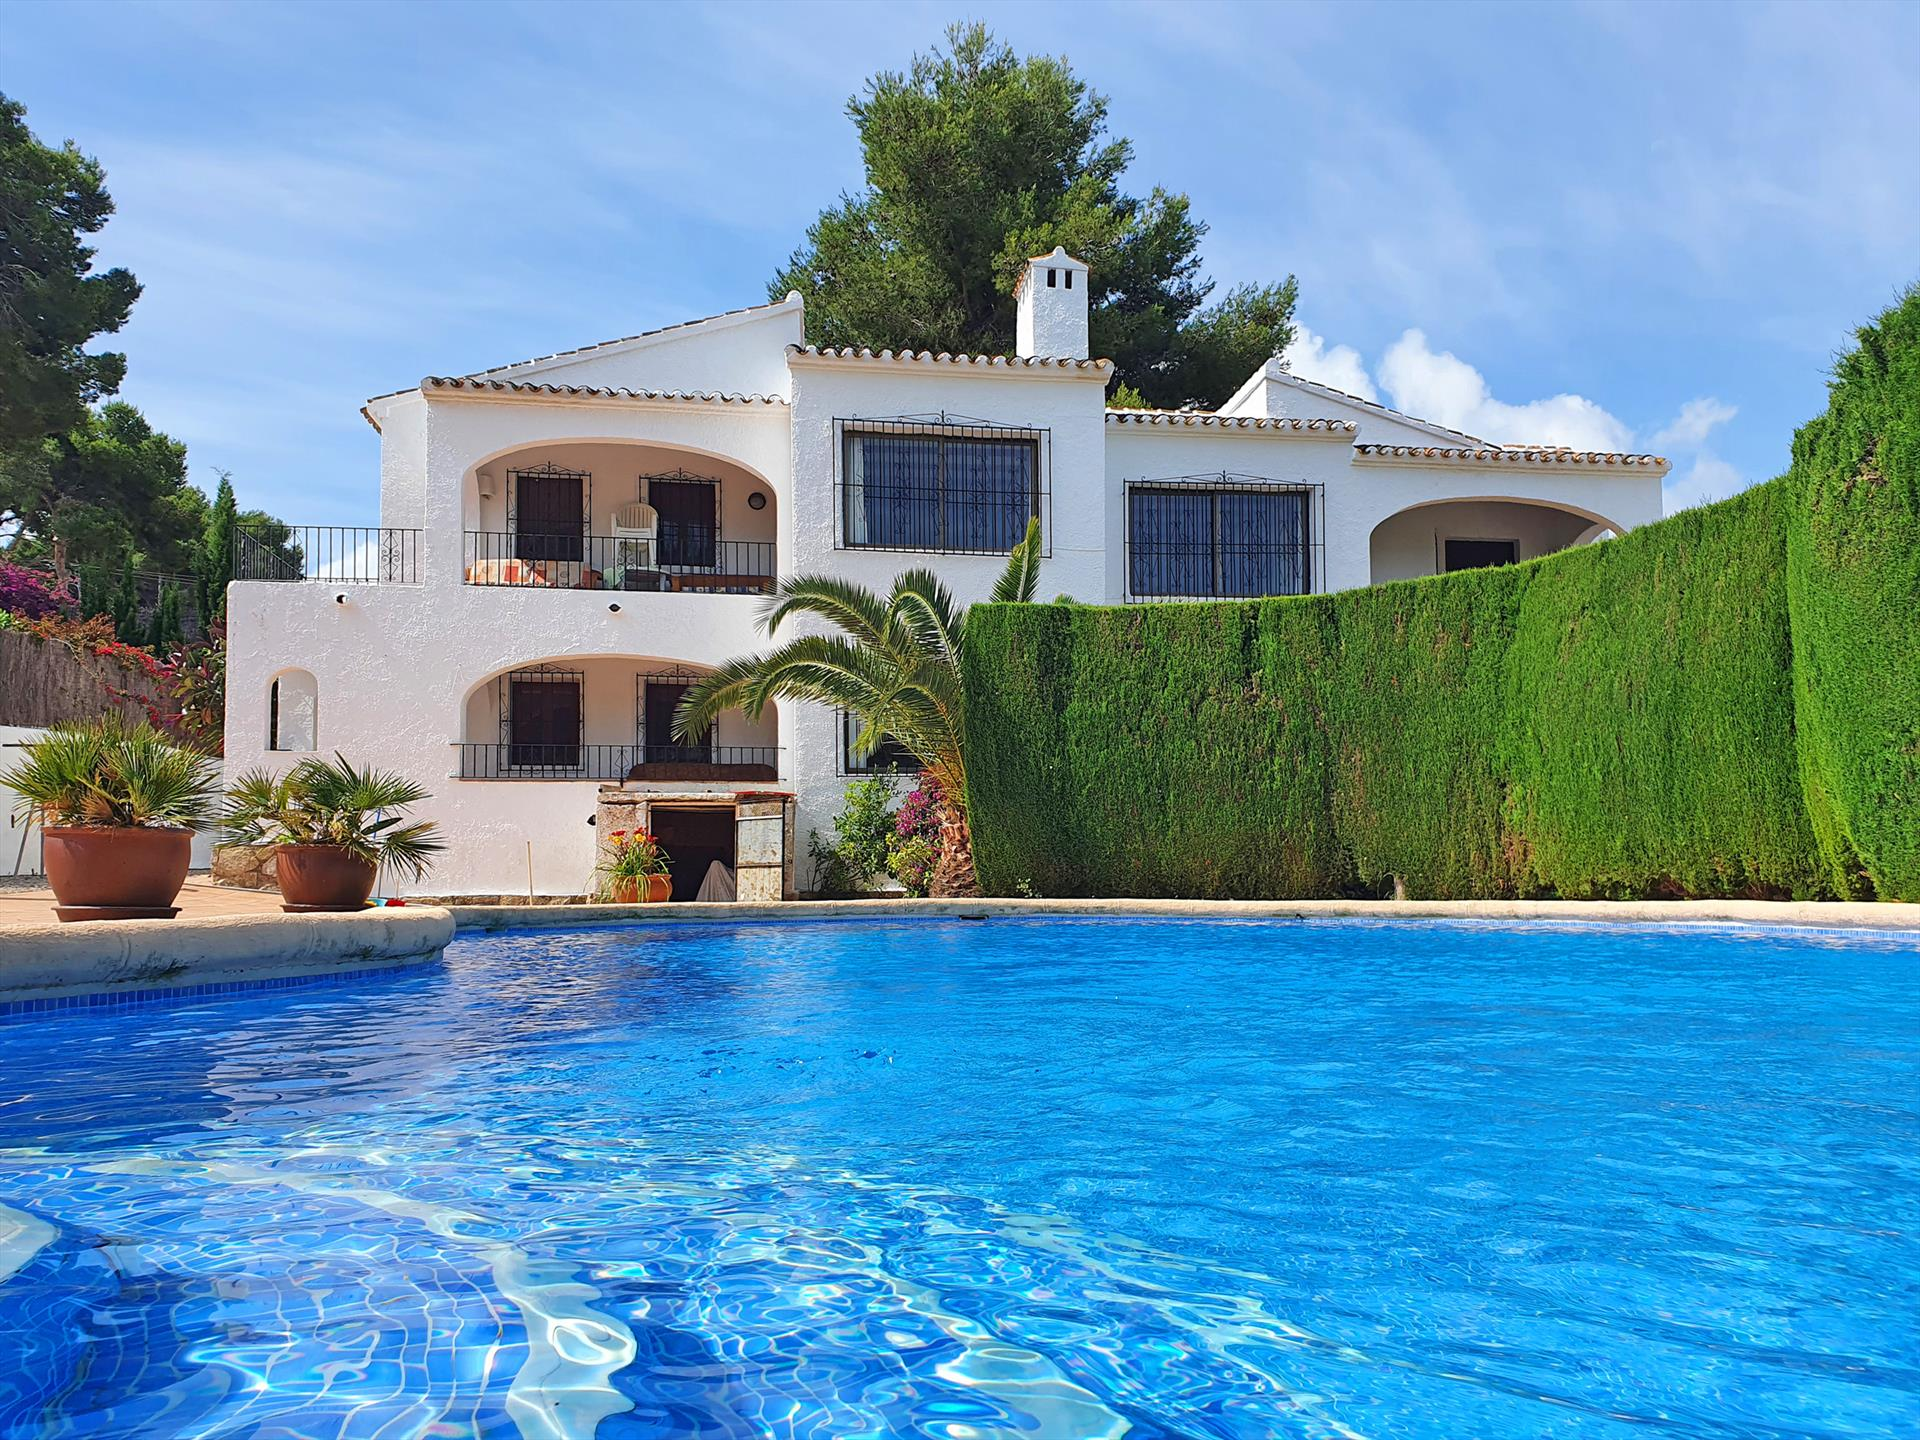 Finca Campo Bello Apartamento C,Finca Campo Bello is a lovely complex in Javea consisting of a total of 5 appartments for 4 or 6 persons each, it has a.....